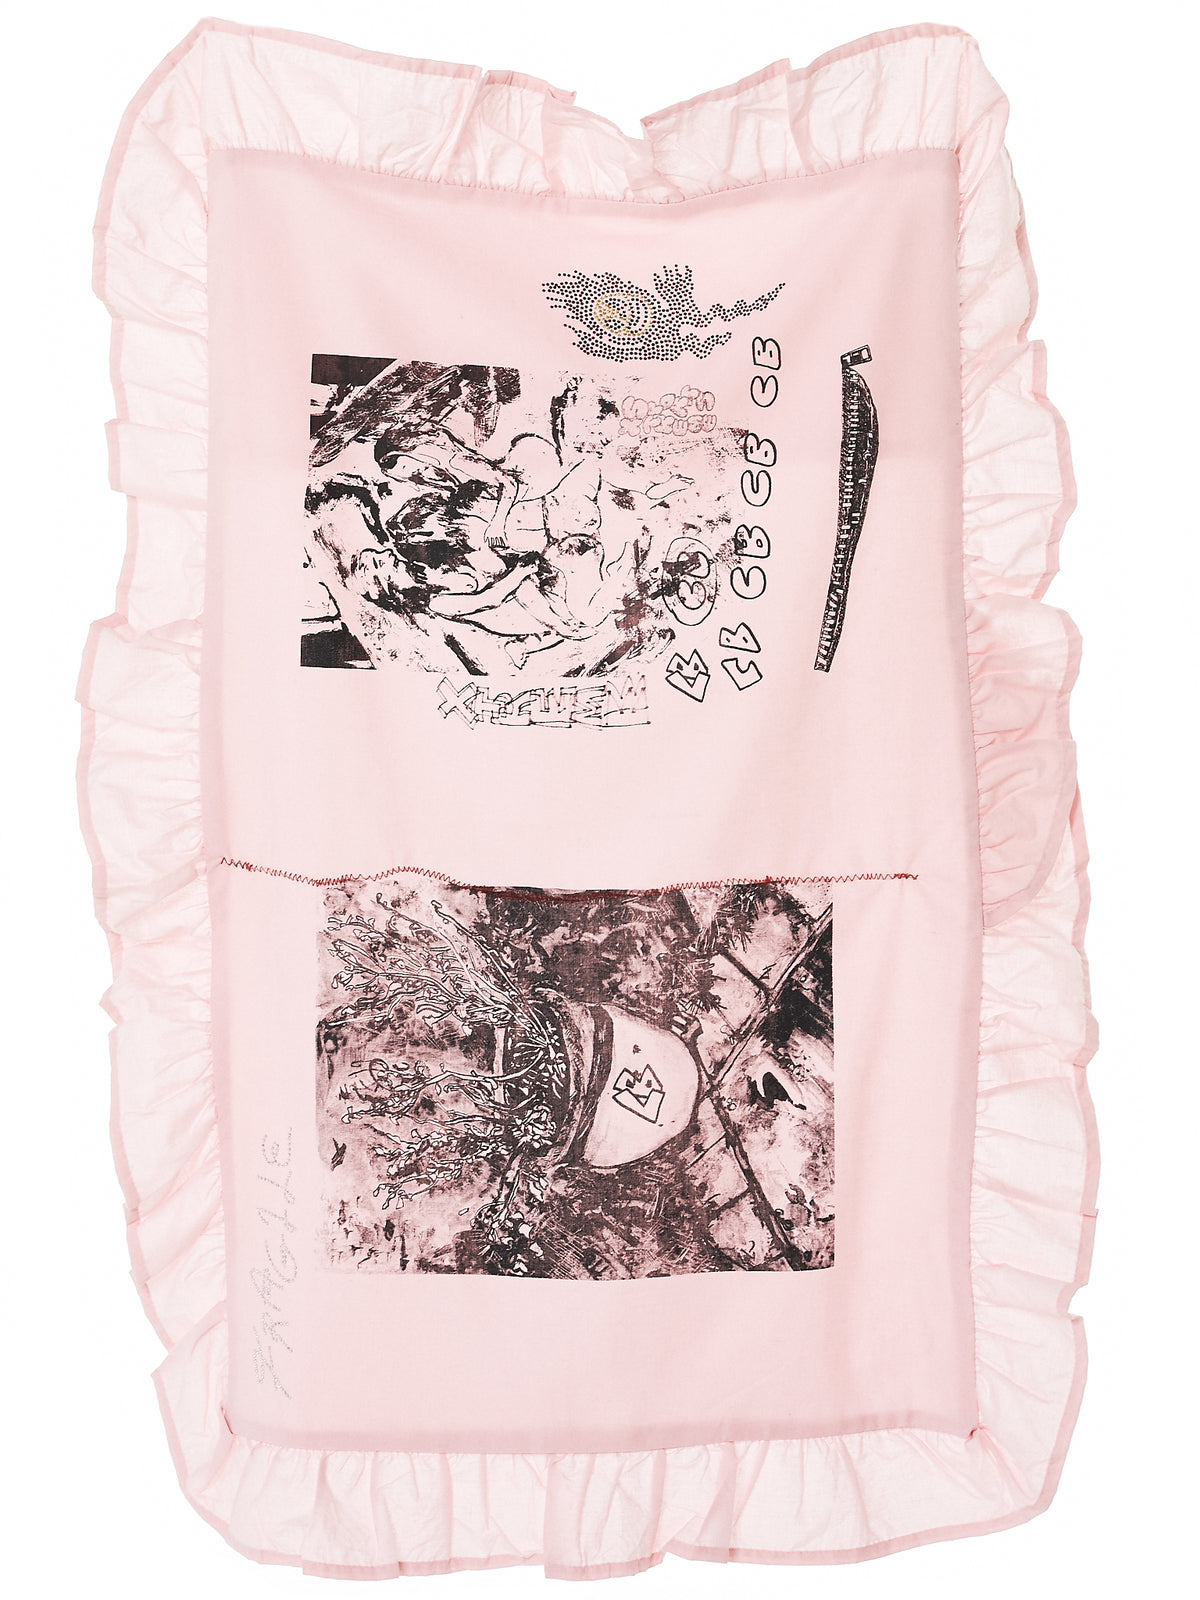 Hand Drawn Pillowcase (PILLOWCASE-PINK)